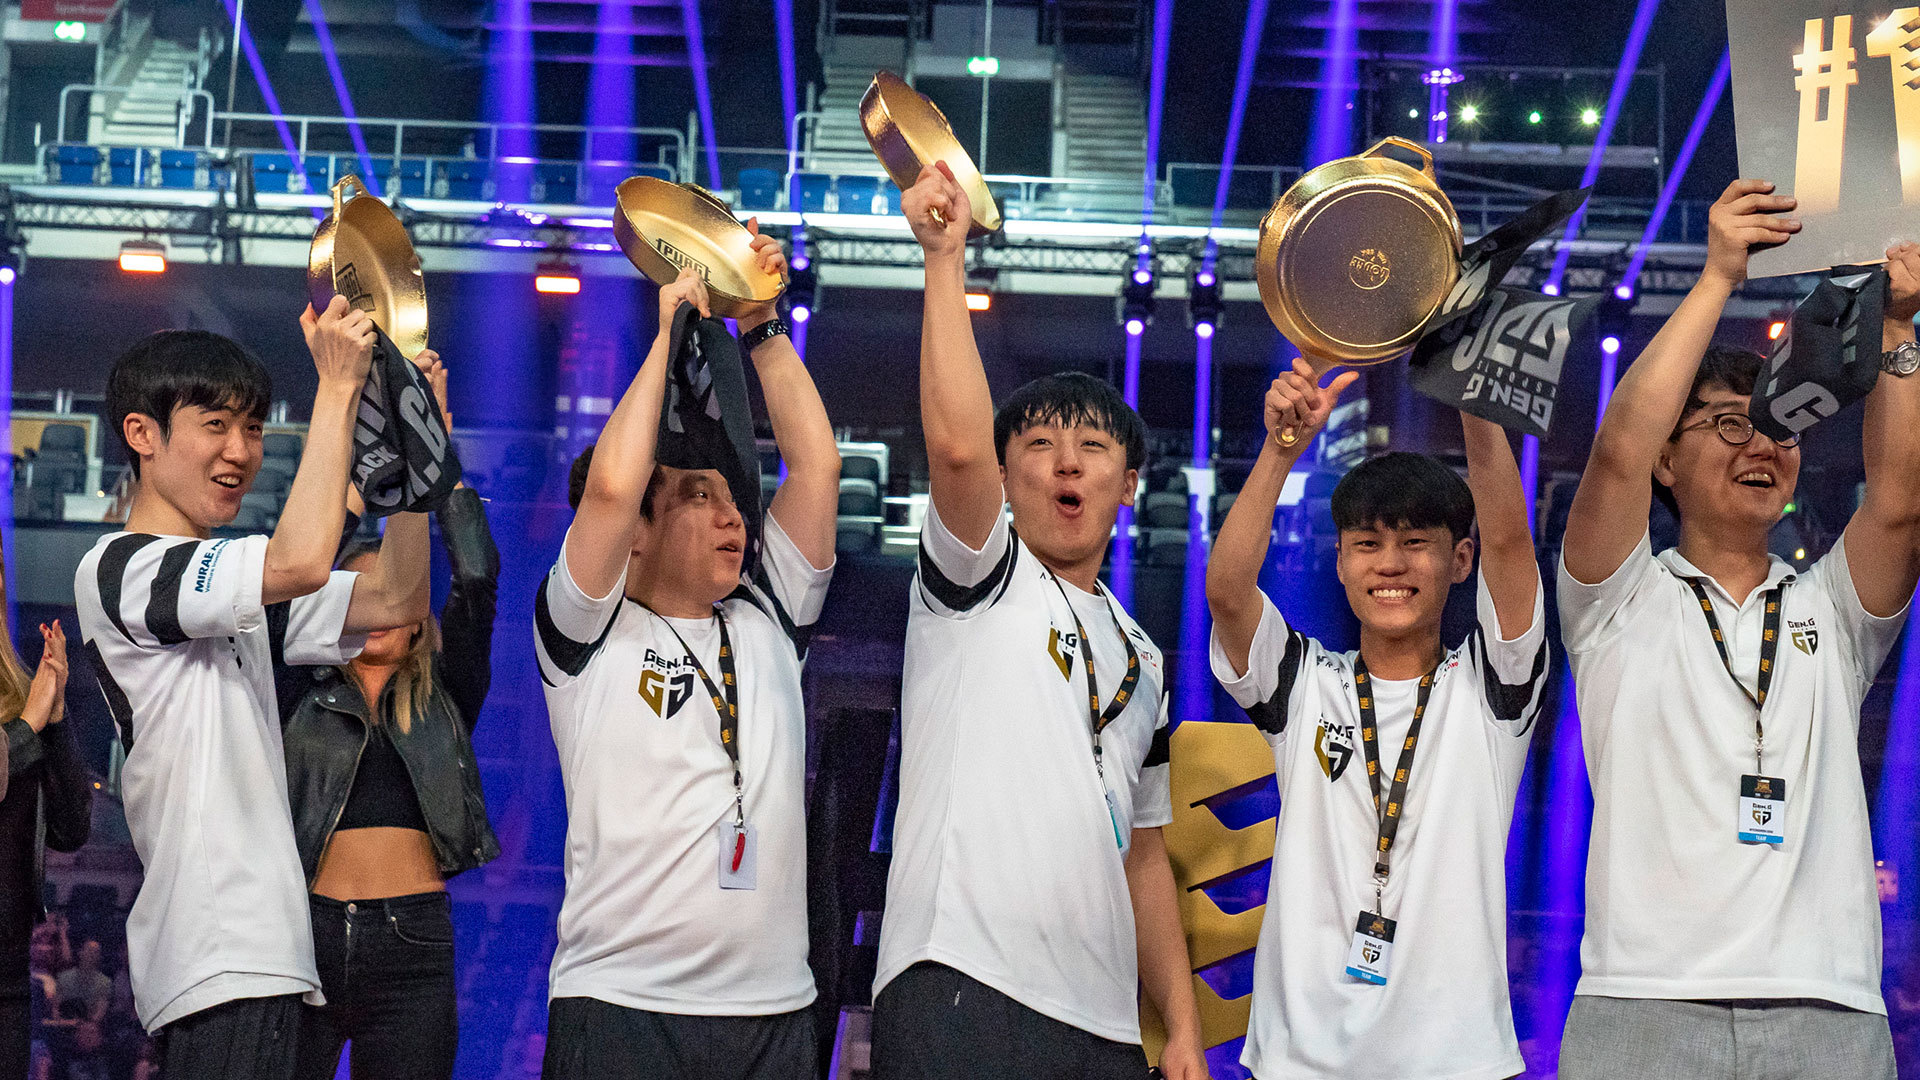 G Gold Have Won The Third Person Perspective Leg Of The  Pubg Global Invitational After Several Tense Standoffs With Second Place Winners Team Liquid